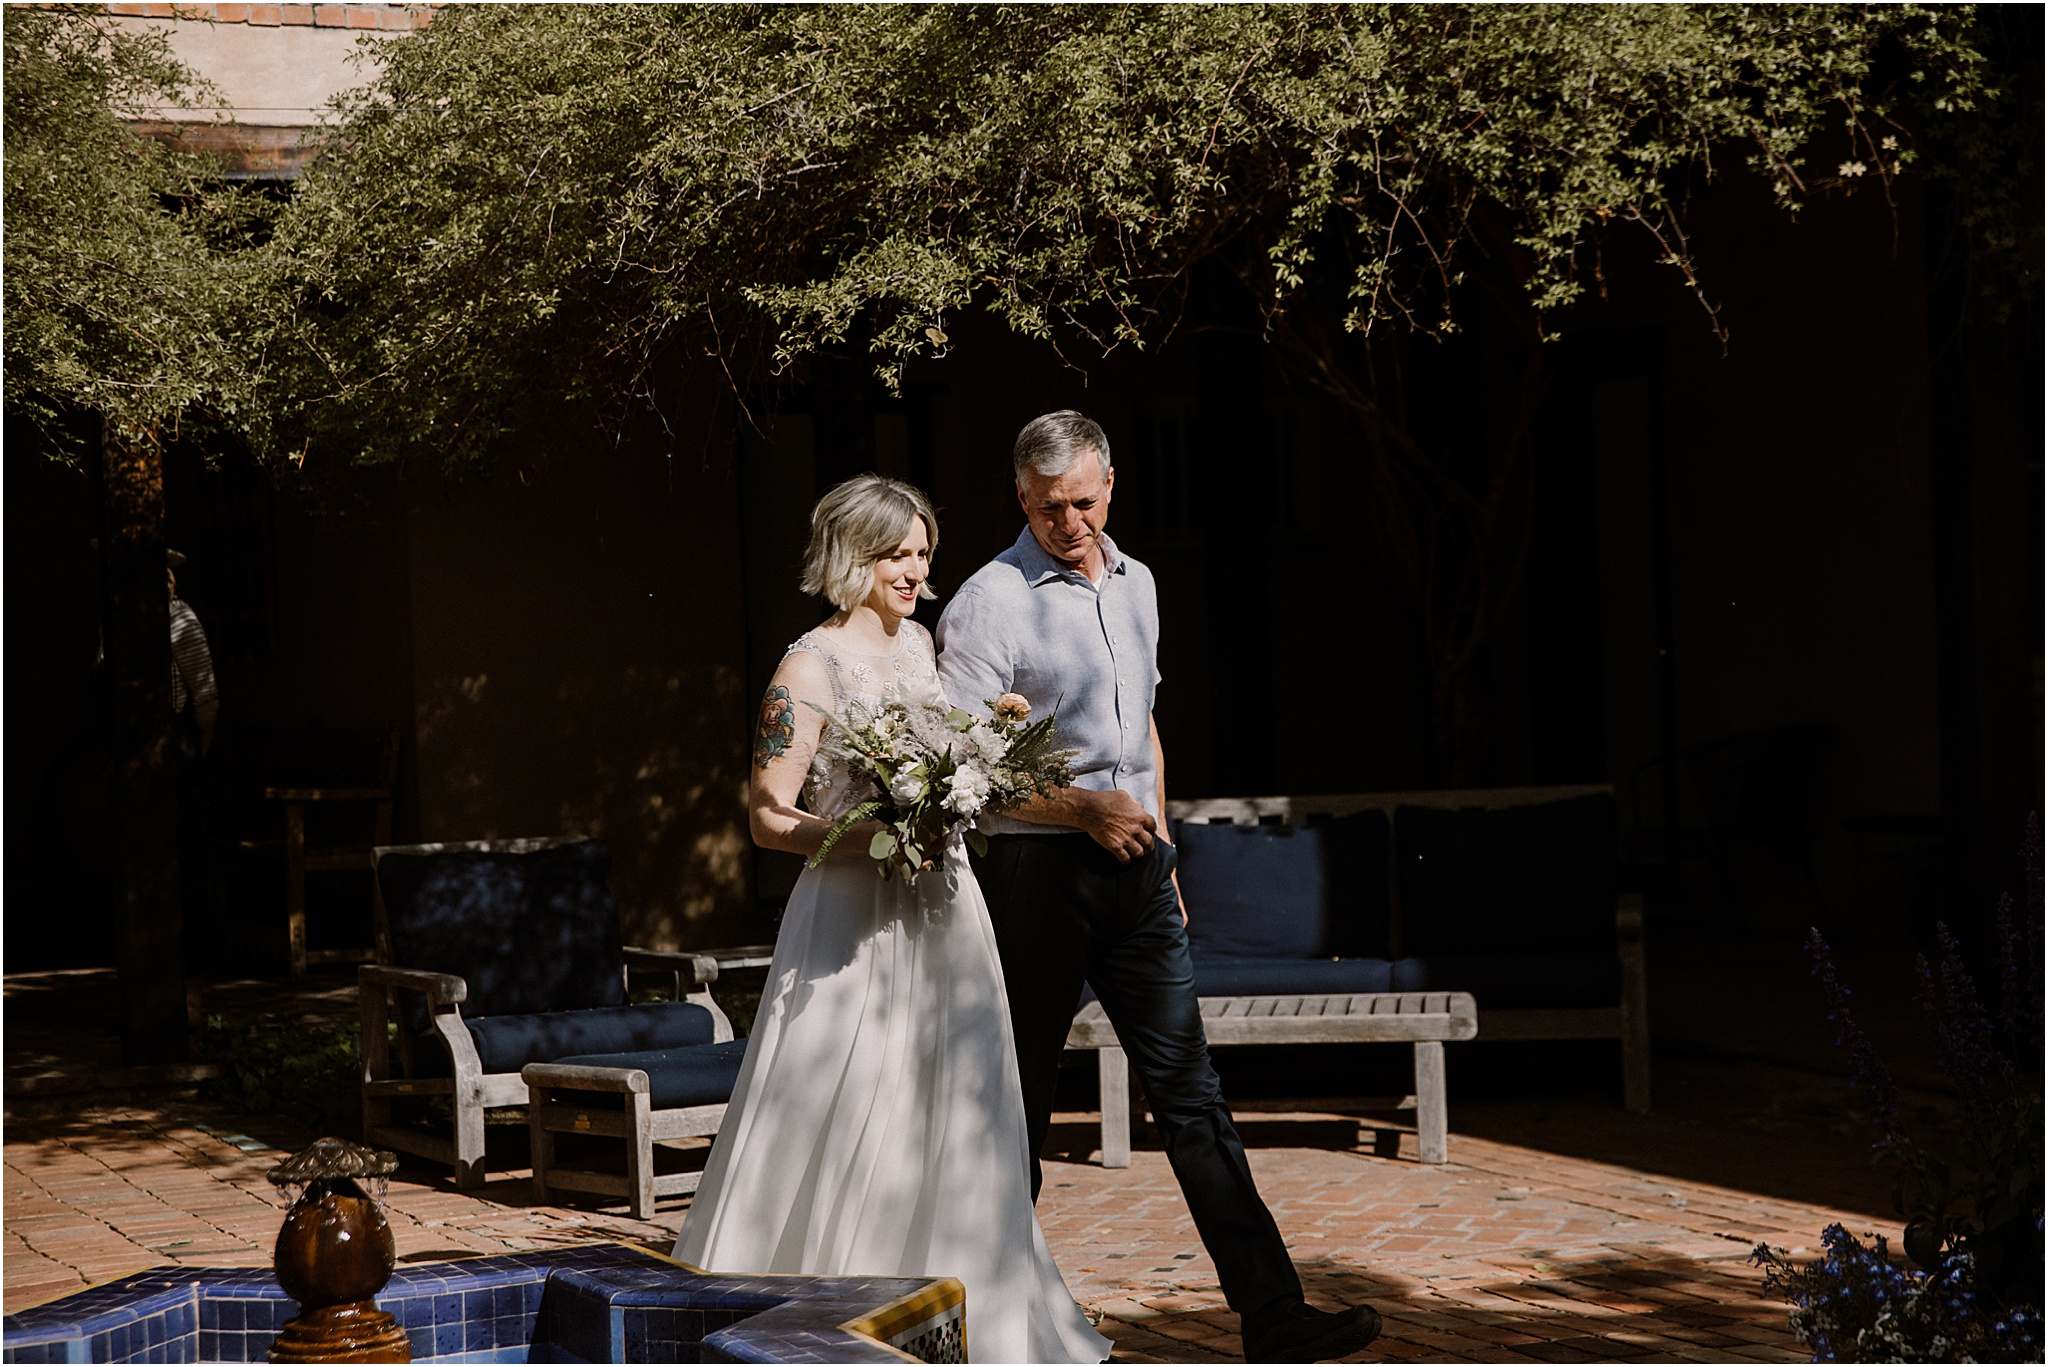 Kelly_Lisa_Los Poblanos_Wedding_Blue Rose Photography98